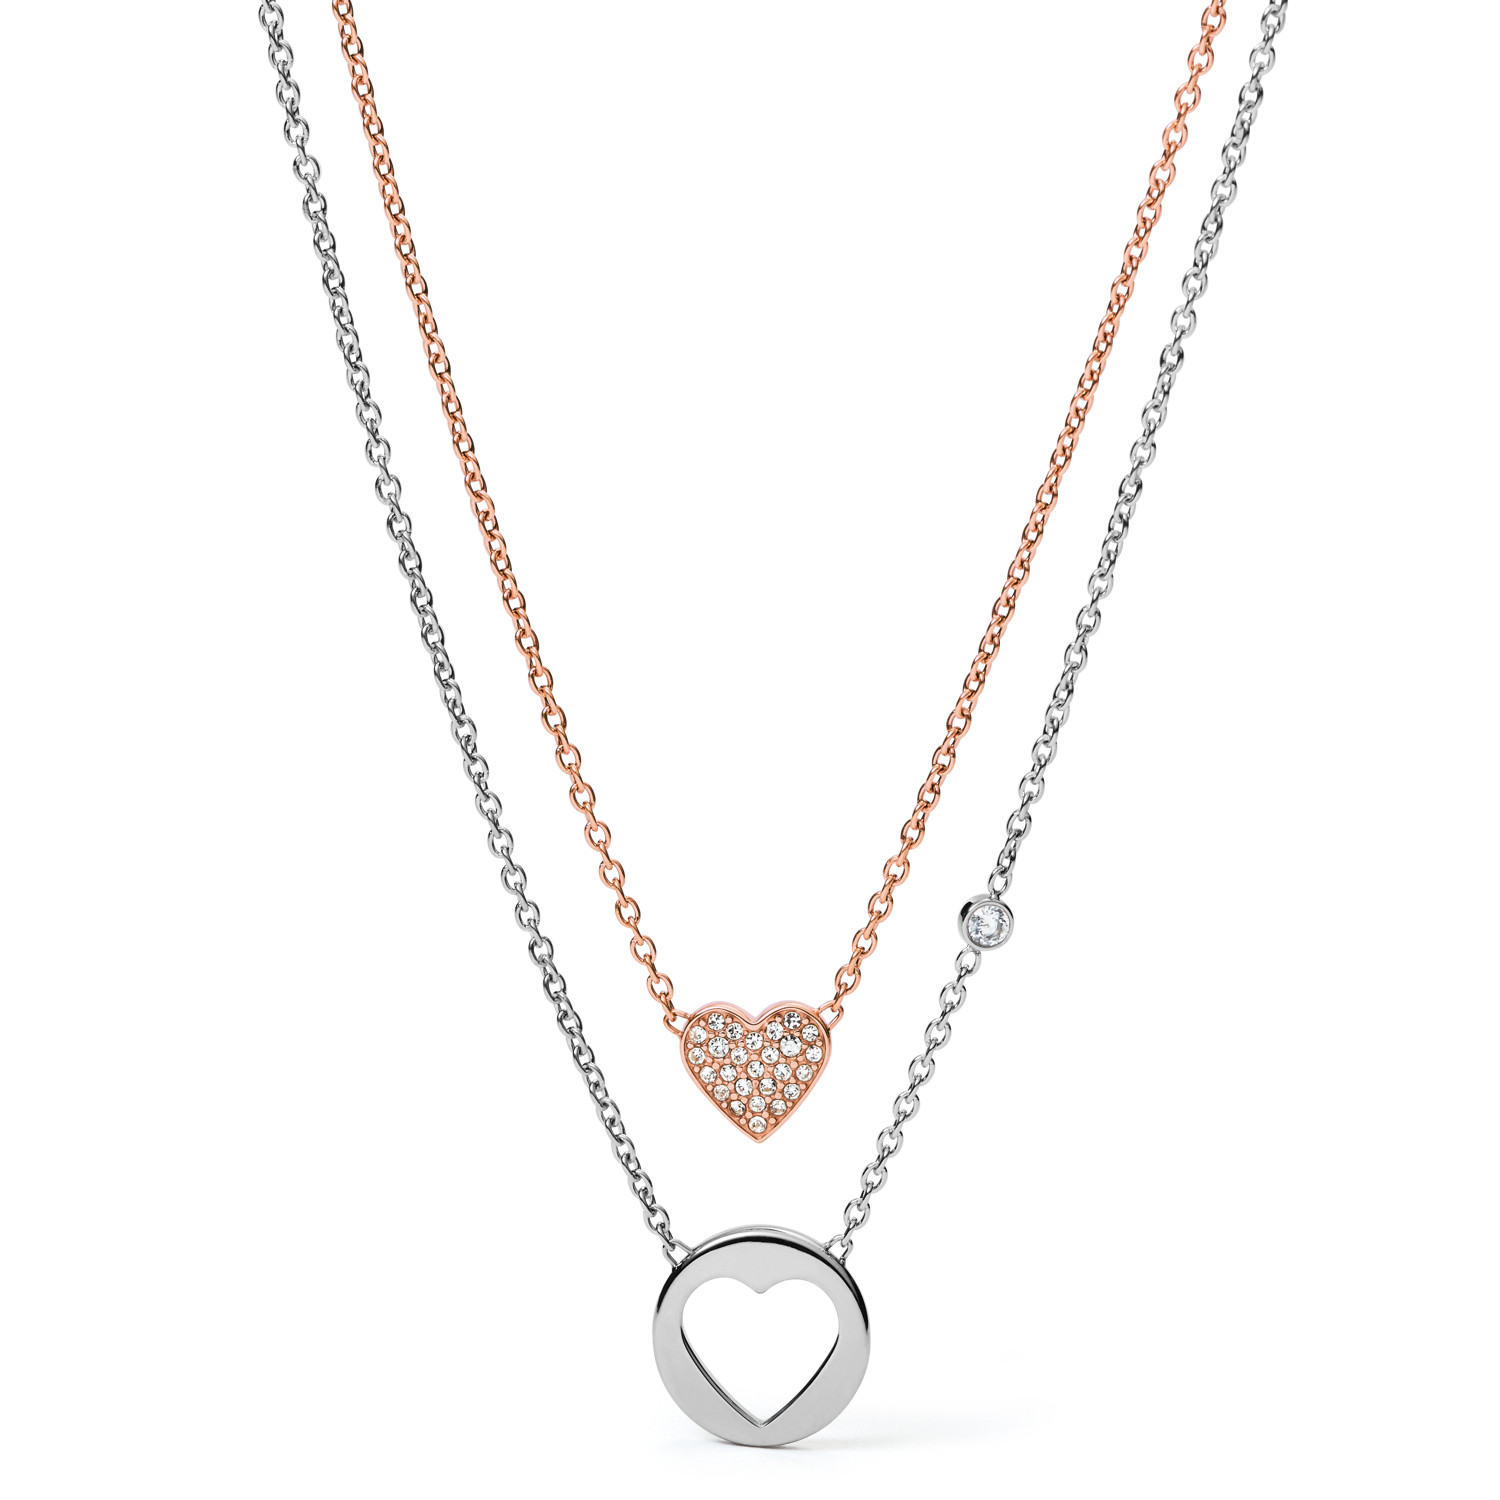 com tone two shop product original posh of by my heart gold necklace notonthehighstreet myposhshop